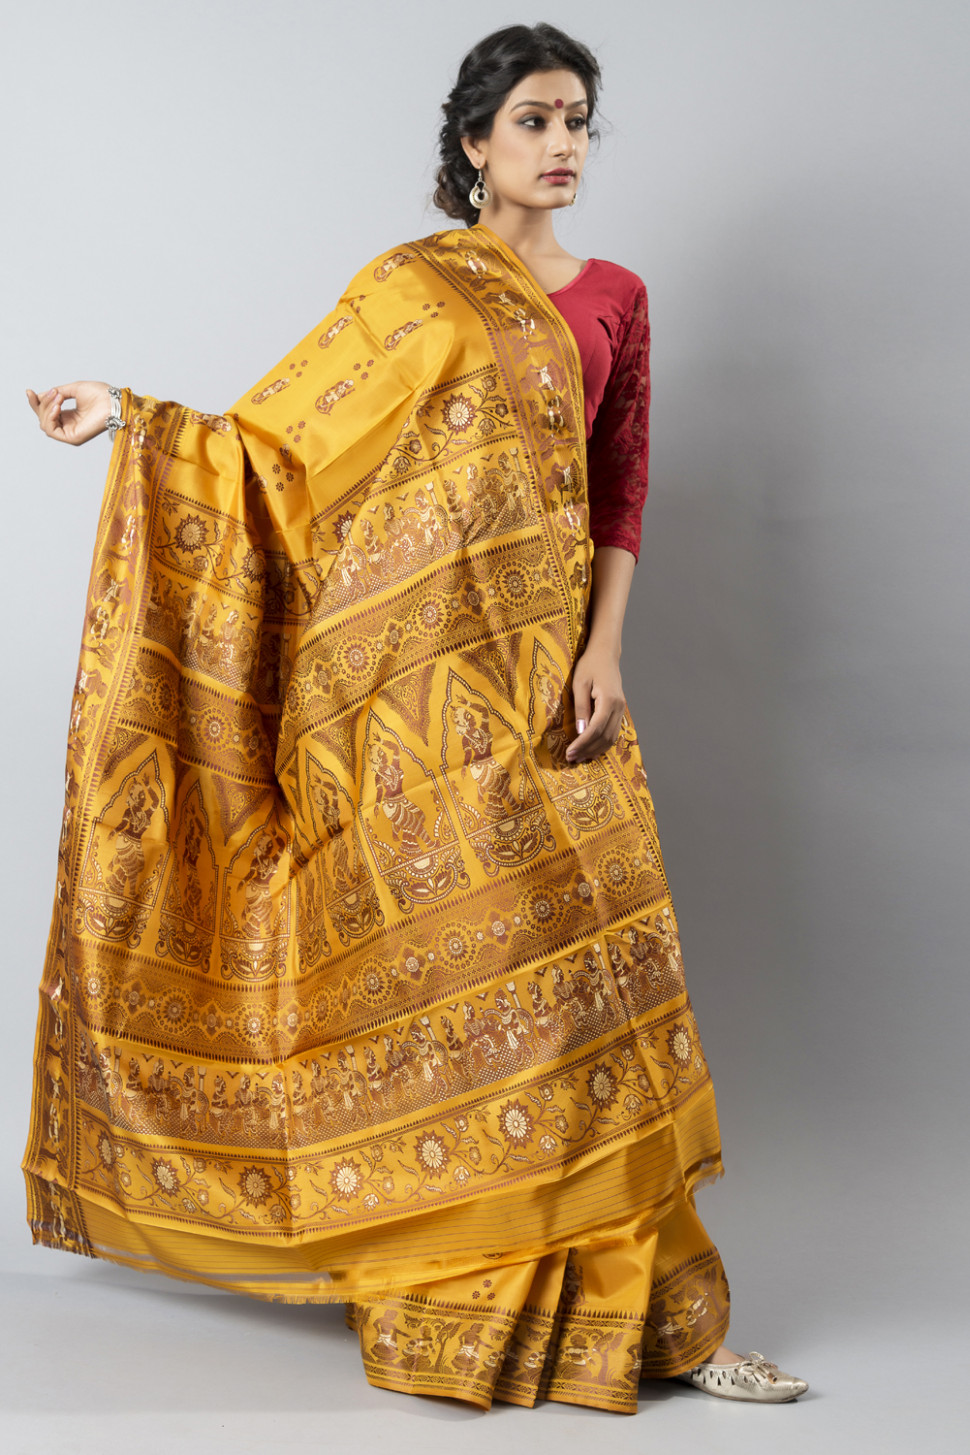 Baluchari Silk  Waltz into any room wearing this stunning